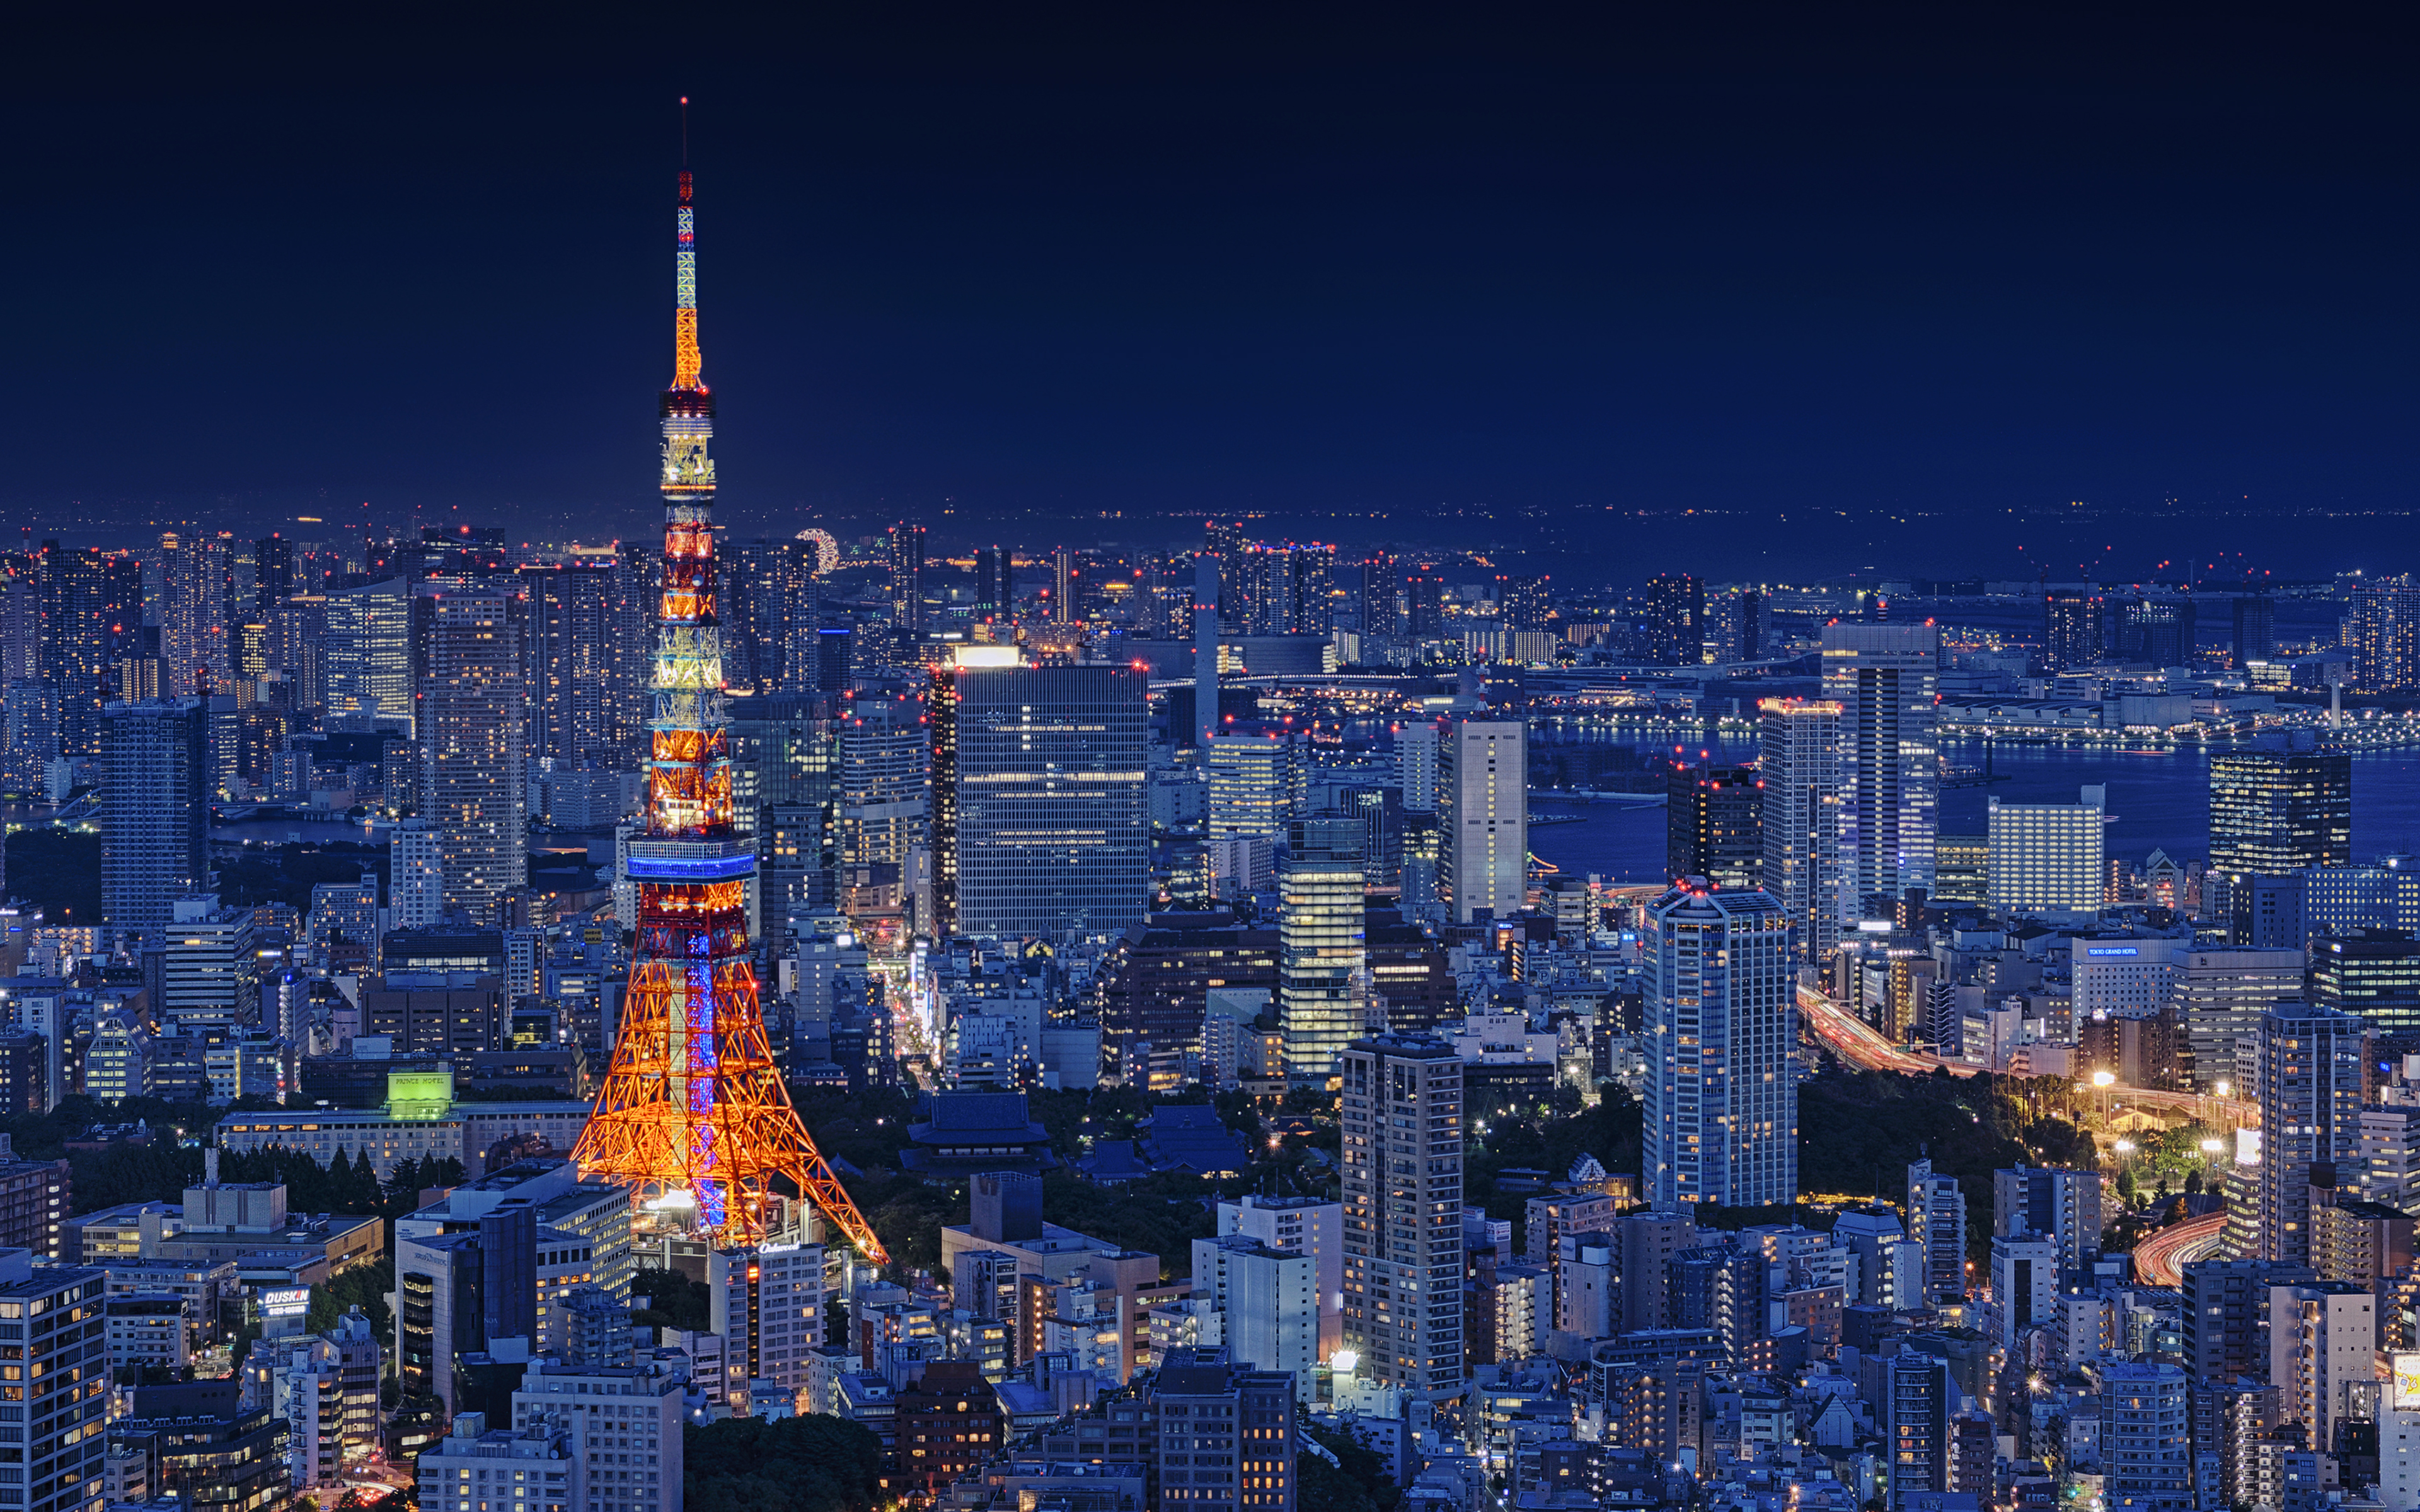 3840x2400 tokyo tower 4k 4k hd 4k wallpapers images backgrounds photos and pictures - Tokyo japan wallpaper ...